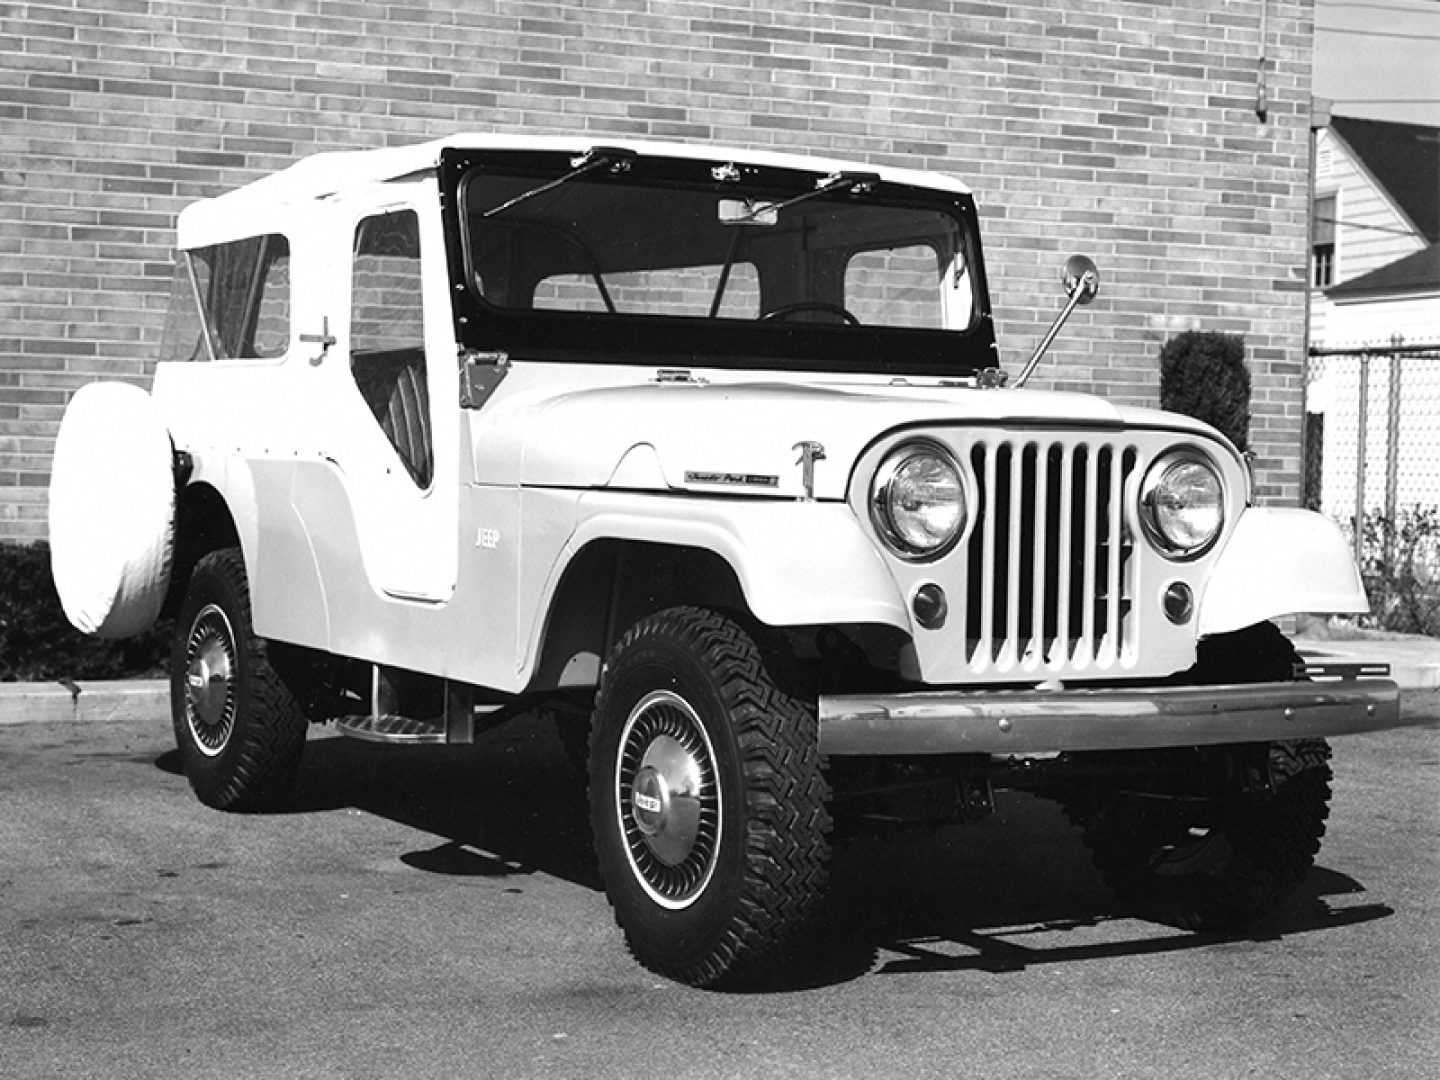 1960s 1960 Willys Jeep For Sale Used Cj 5a 6a Tuxedo Park